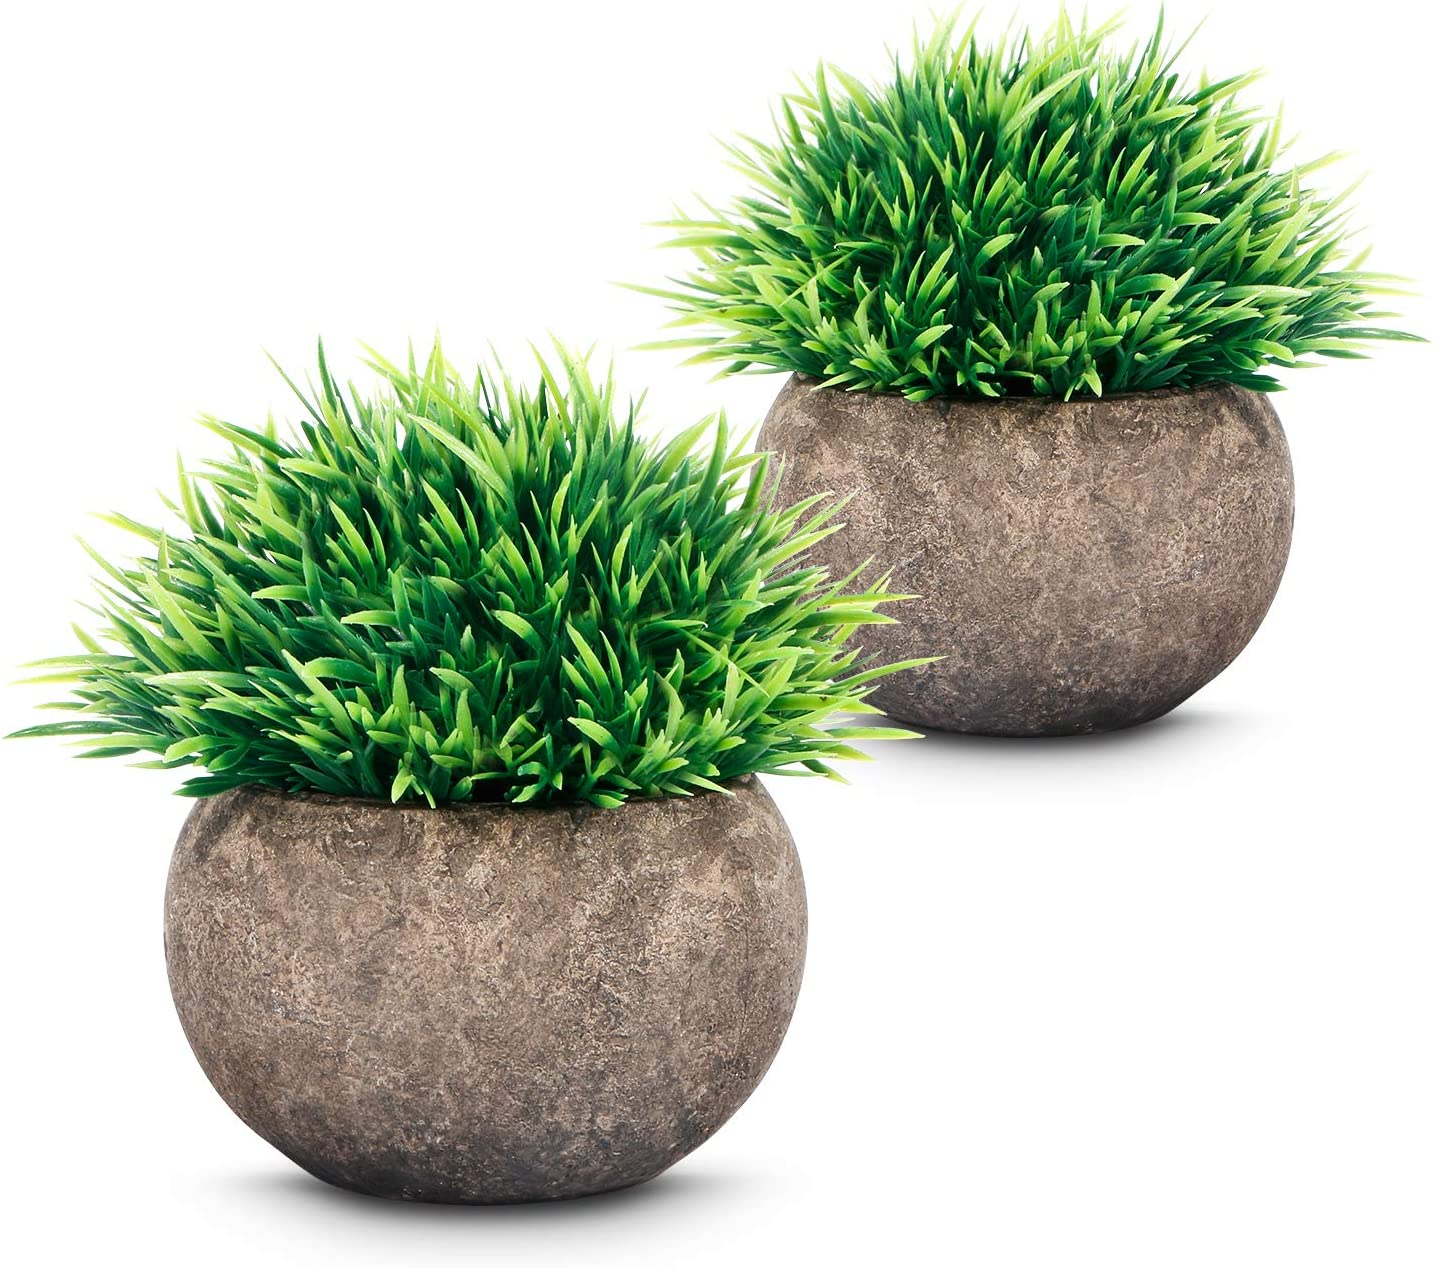 ASHINER 2 Pack Artificial Plants Indoors in Pots Faux Fake Plastic Plant Eucalyptus Rosemary Leaves for House//Bedroom//Desk//Office Decorative